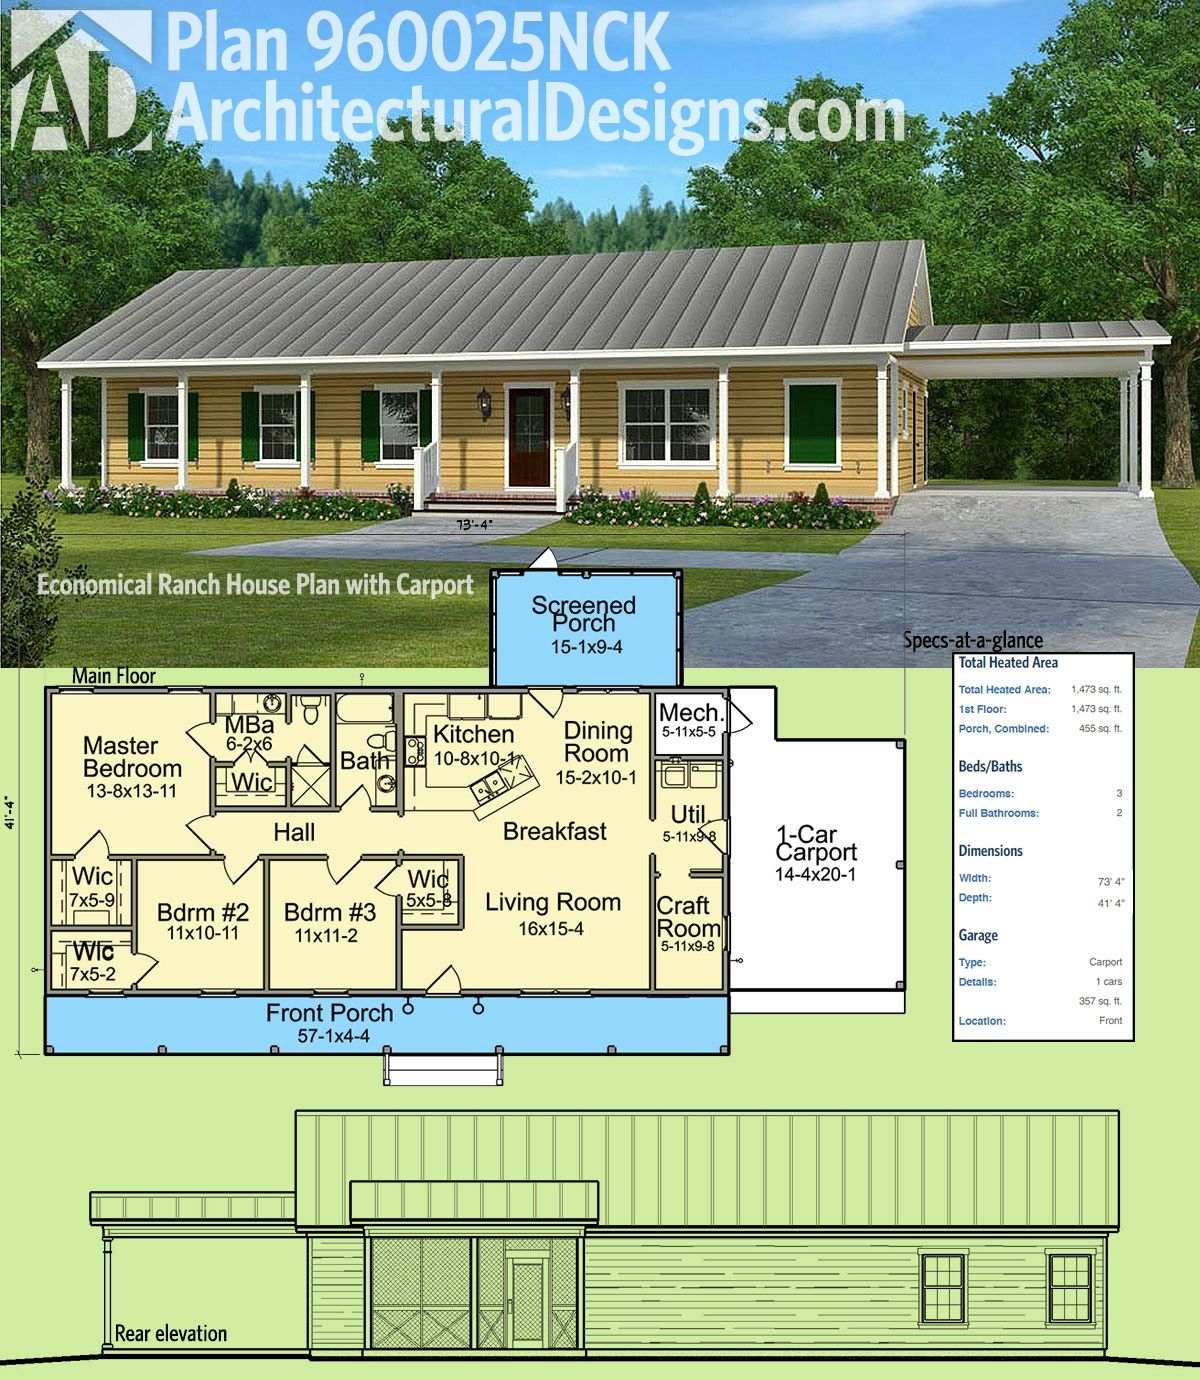 Exceptional Architectural Designs Simple House Plan 960025NCK Is A Single Story  Country Style Ranch With A Carport On The Side. It Gives You Over 1,400  Square Feet Of ...